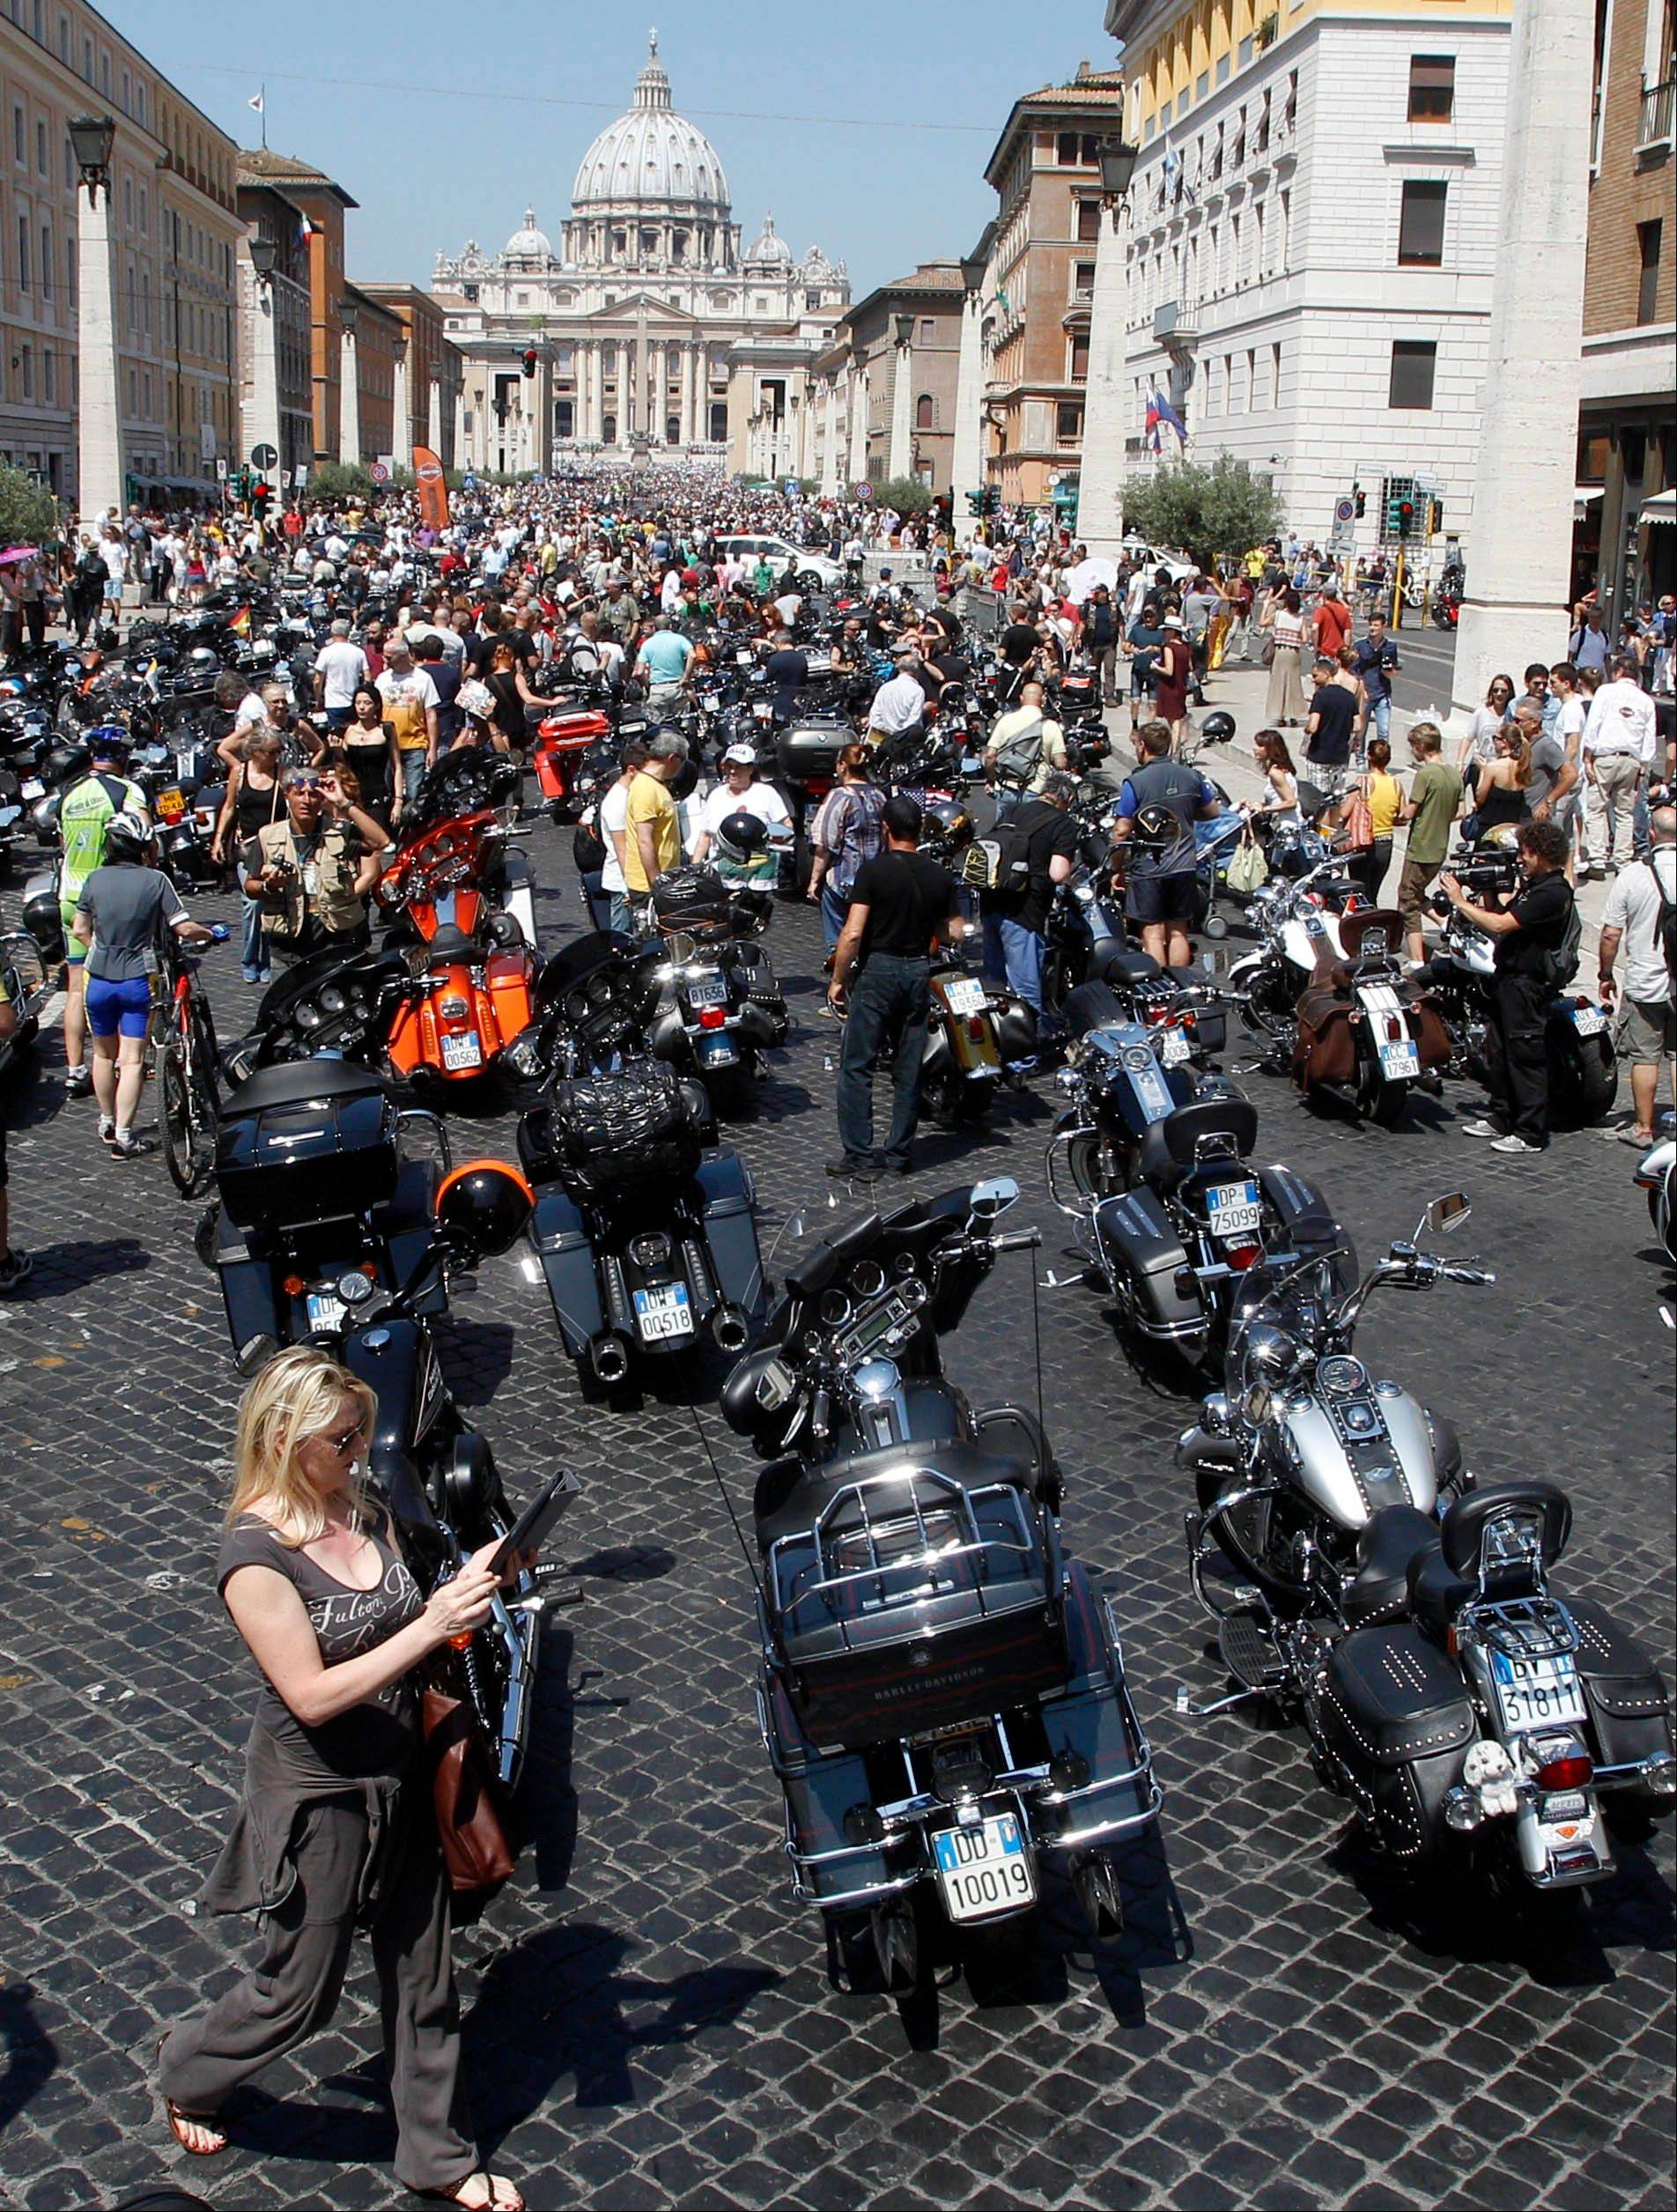 Harley-Davidson motorcycles are parked in Via della Conciliazione leading to St. Peter's Square during a Mass celebrated by Pope Francis, at the Vatican Sunday.